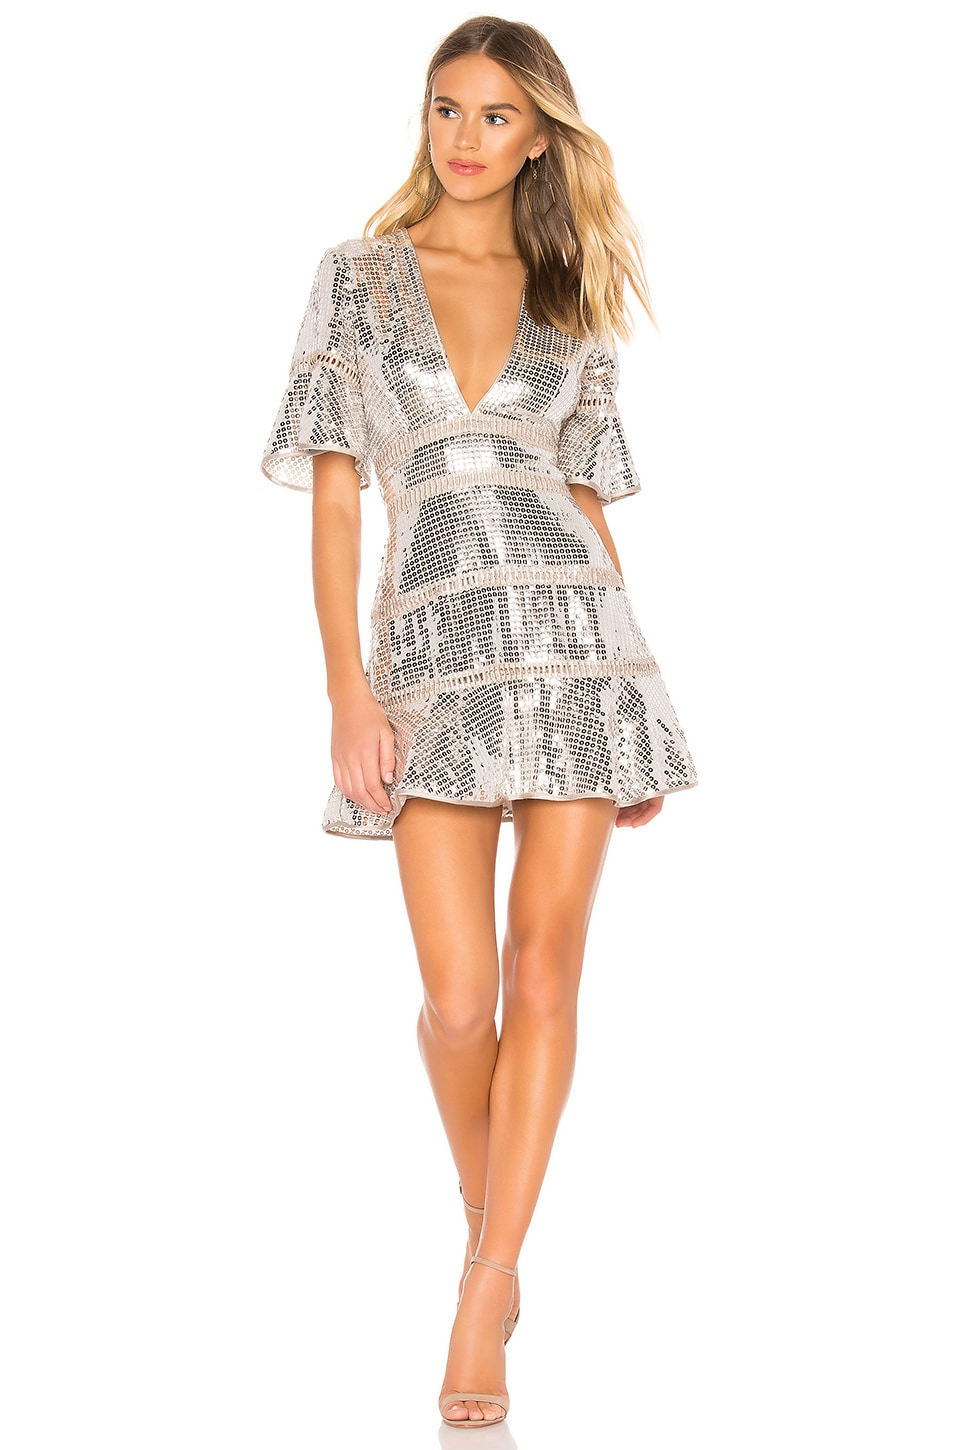 SAYLOR Sidney Dress in Silver